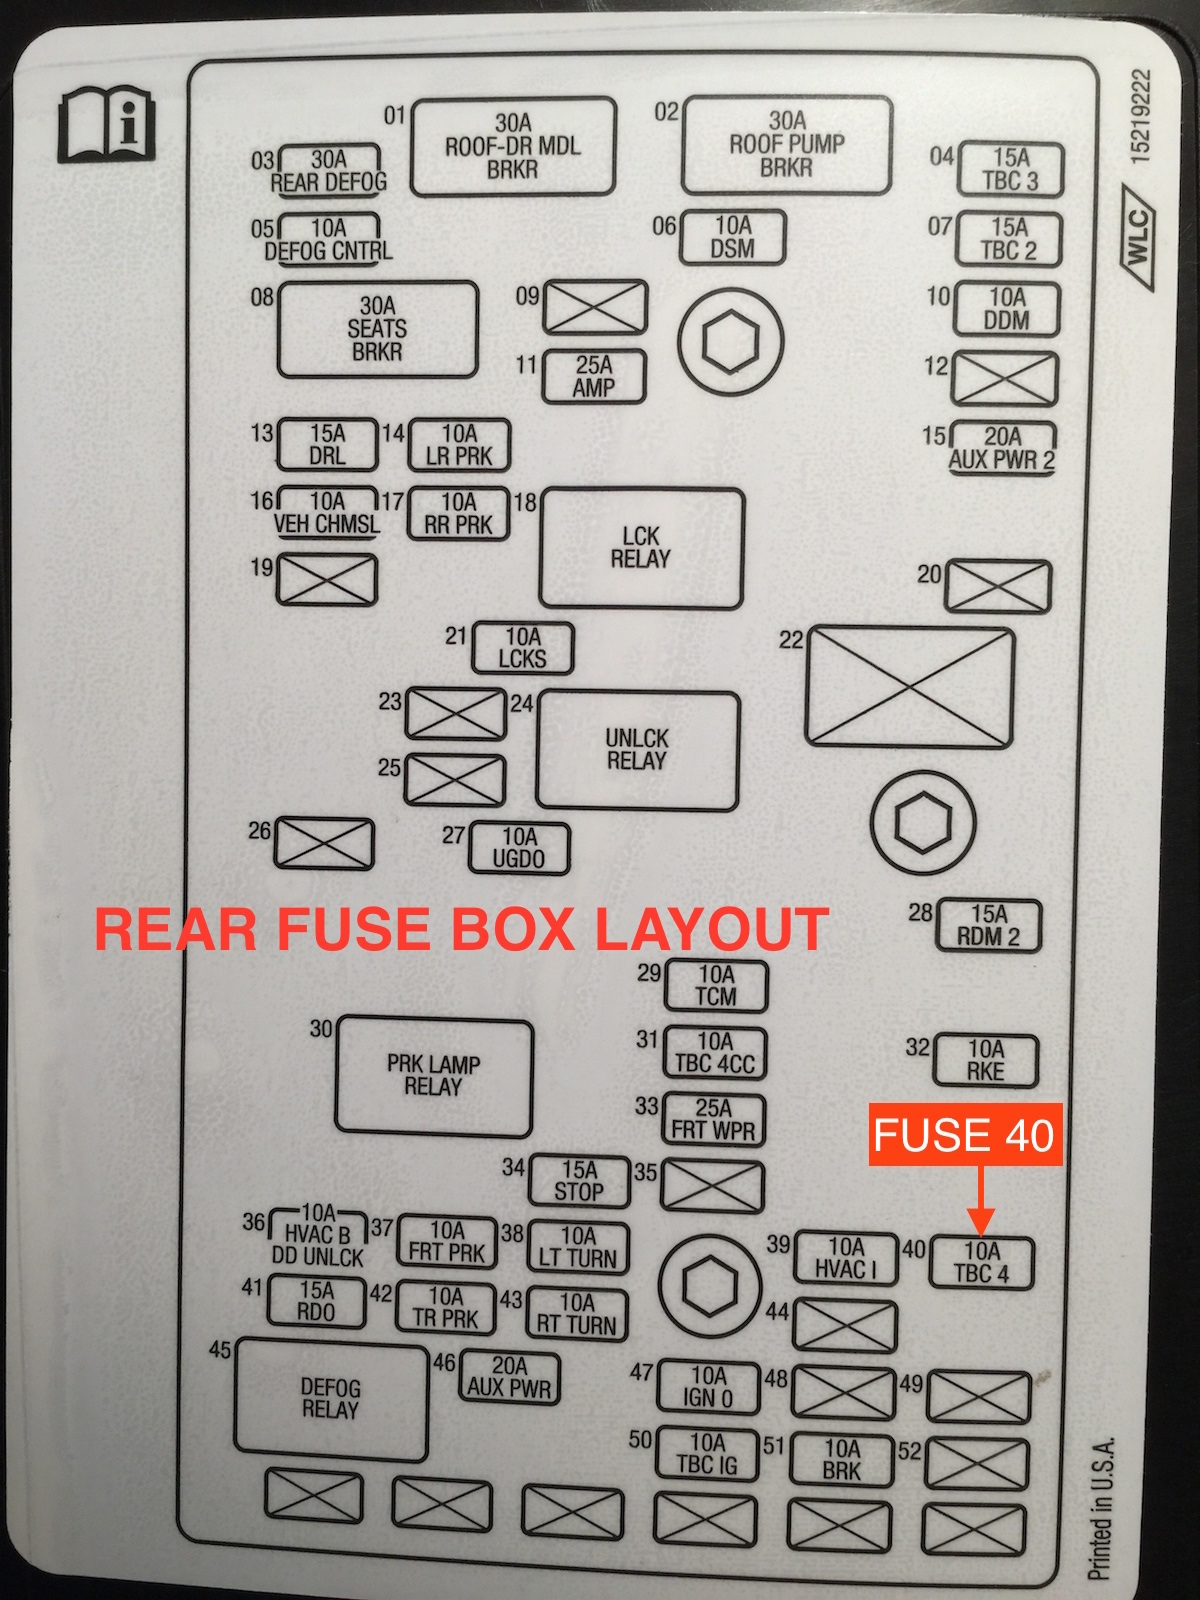 258345d1436789395 rear fuse box 101 img_2200 copy 2 rear fuse box 101 chevy ssr forum 1974 Chevy Truck Fuse Box Diagram at edmiracle.co